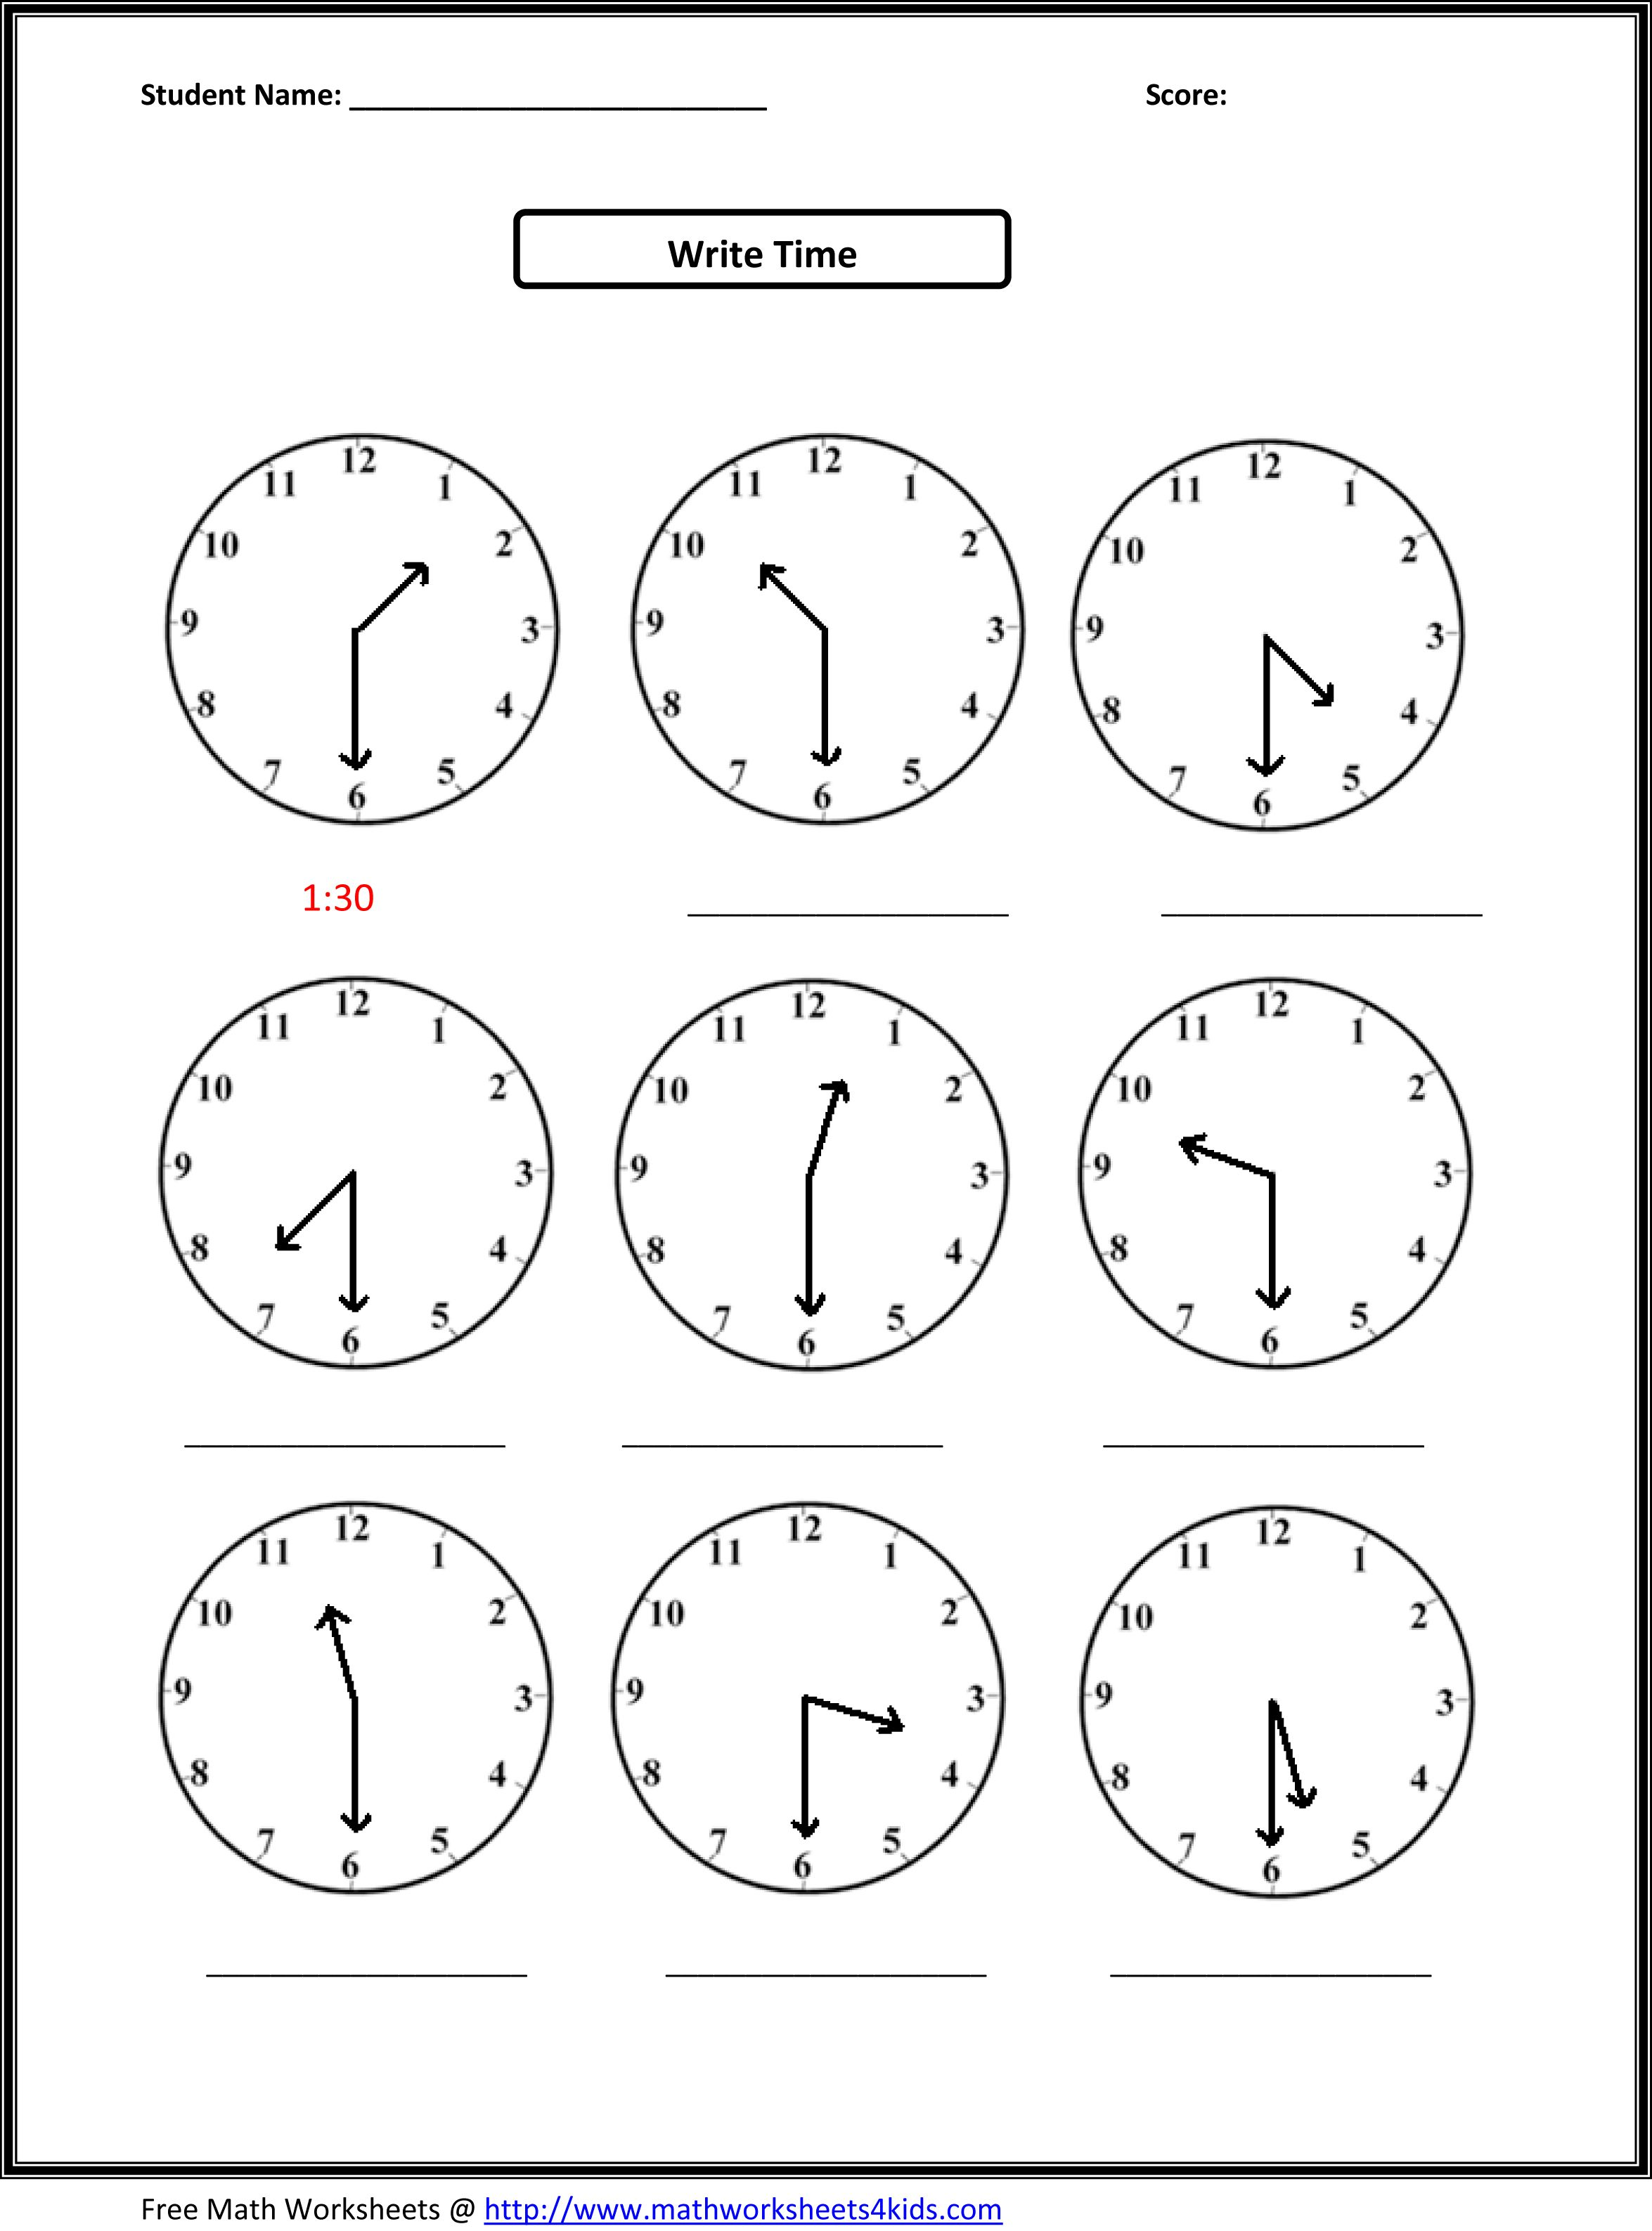 Weirdmailus  Inspiring Worksheet On Time For Grade   Reocurent With Magnificent Free Printable Telling Time Worksheets Nd Grade  Reocurent With Amazing Main Clause And Subordinate Clause Worksheets Also Calculation Worksheets In Addition Math Worksheets For Year  And Worksheets Verbs As Well As Times Tables Challenge Worksheets Additionally Subtraction Money Worksheets From Reocurentcom With Weirdmailus  Magnificent Worksheet On Time For Grade   Reocurent With Amazing Free Printable Telling Time Worksheets Nd Grade  Reocurent And Inspiring Main Clause And Subordinate Clause Worksheets Also Calculation Worksheets In Addition Math Worksheets For Year  From Reocurentcom